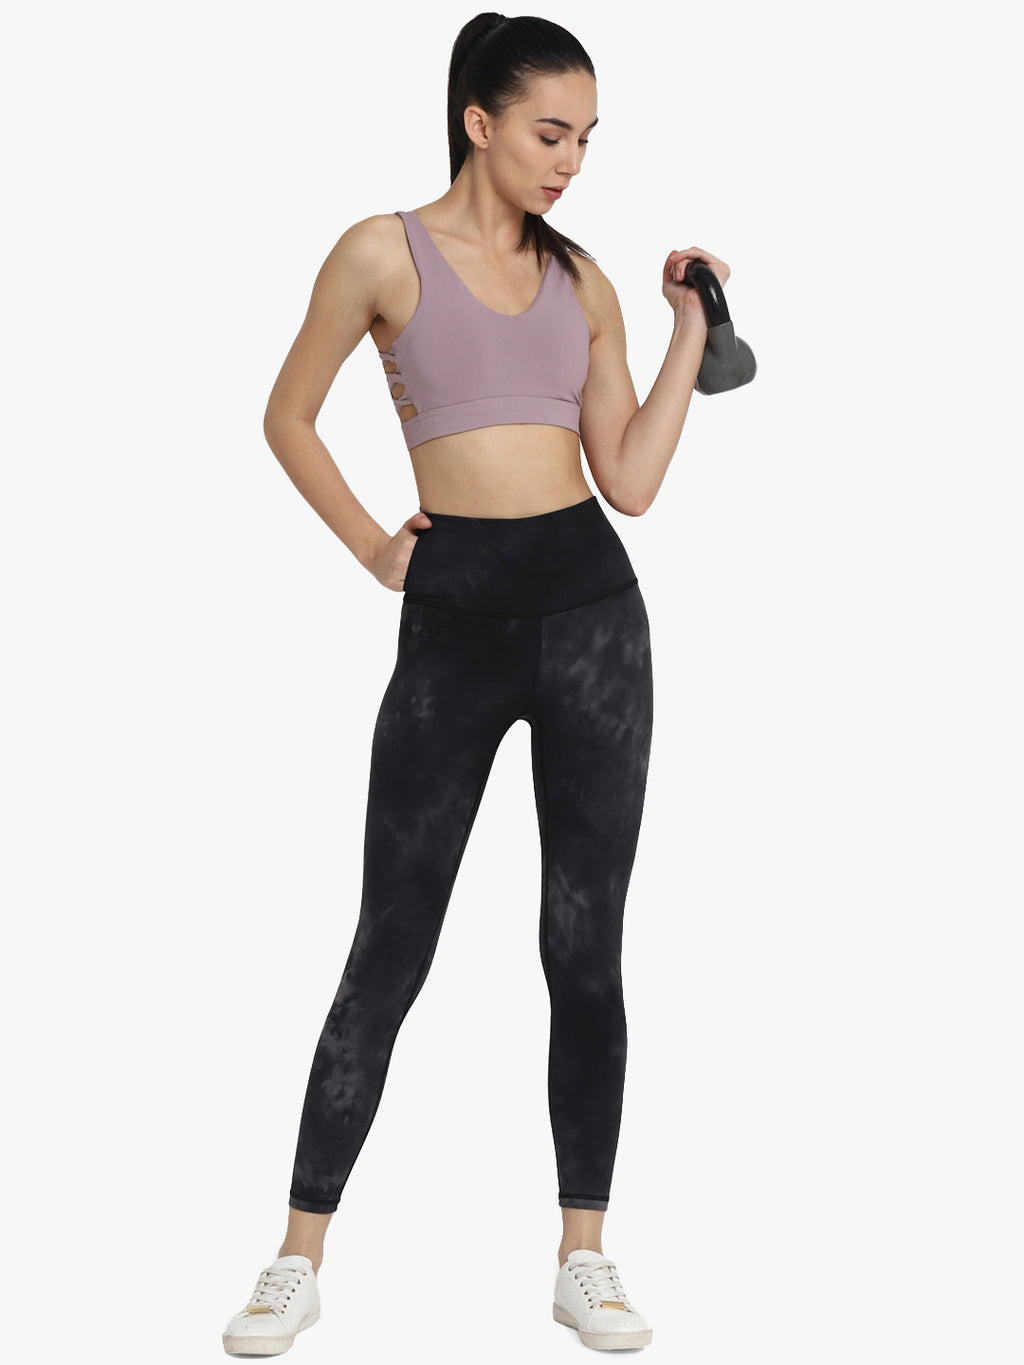 Shakti Warrior Leggings